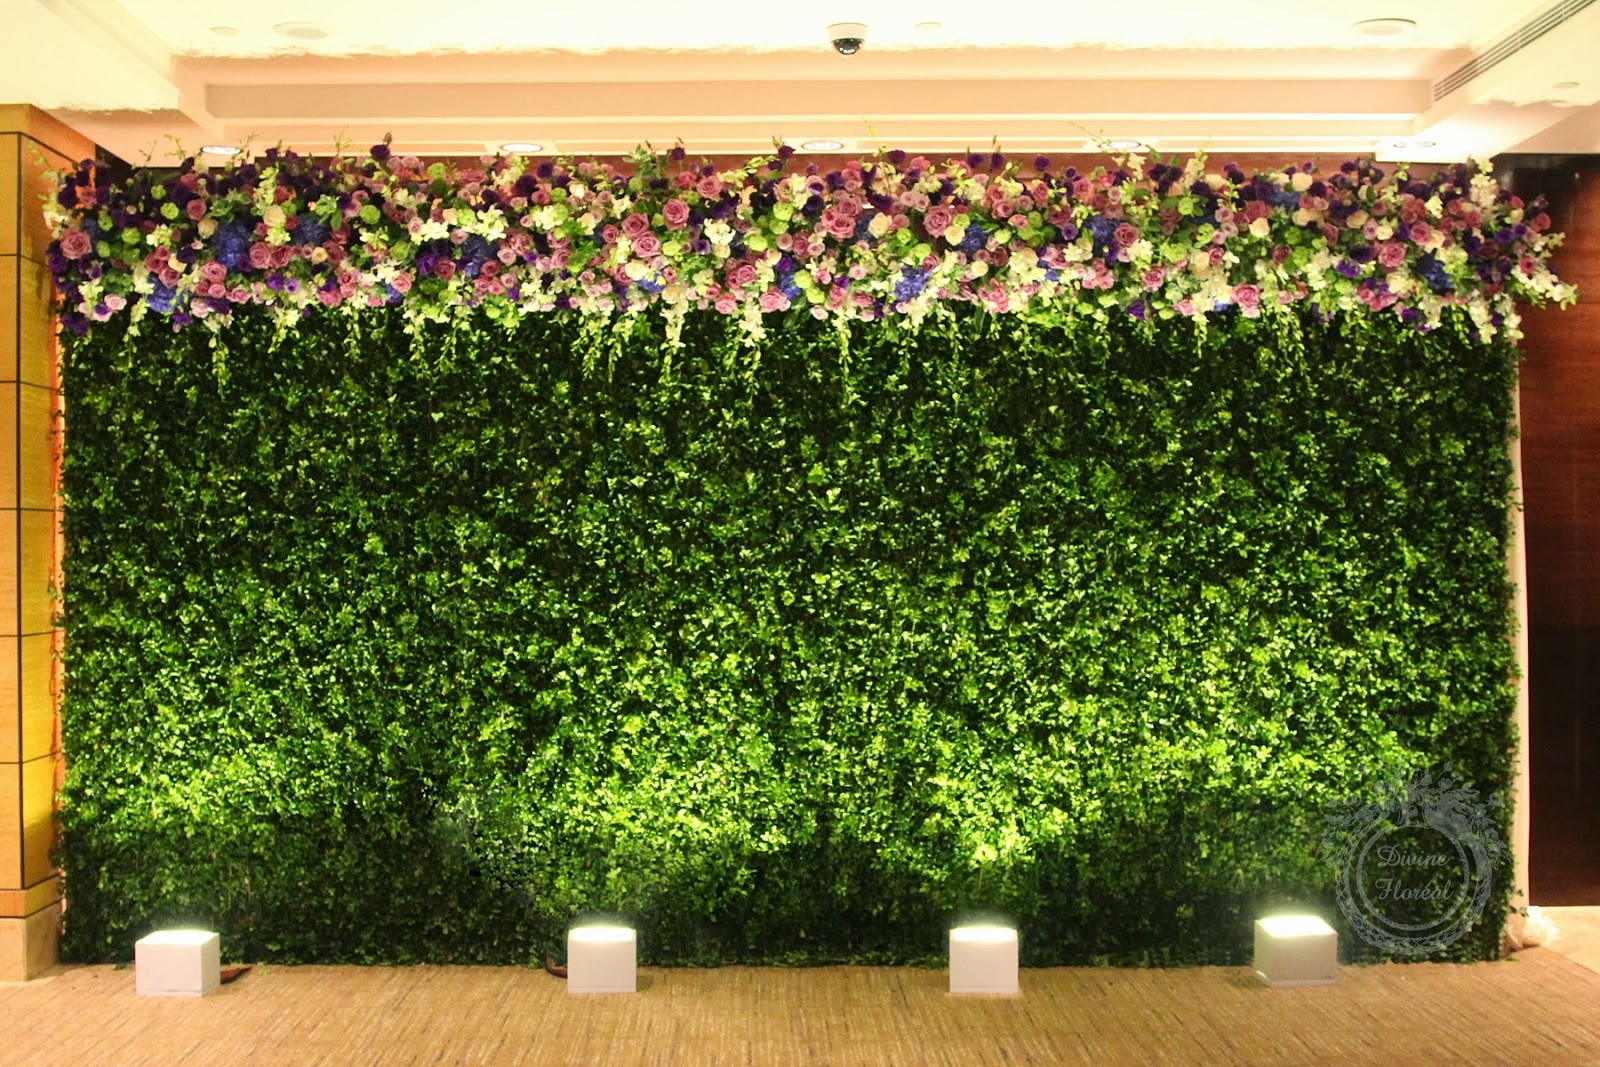 Flower Power 15 Awesome Wedding Flower Walls Lots of love Susan